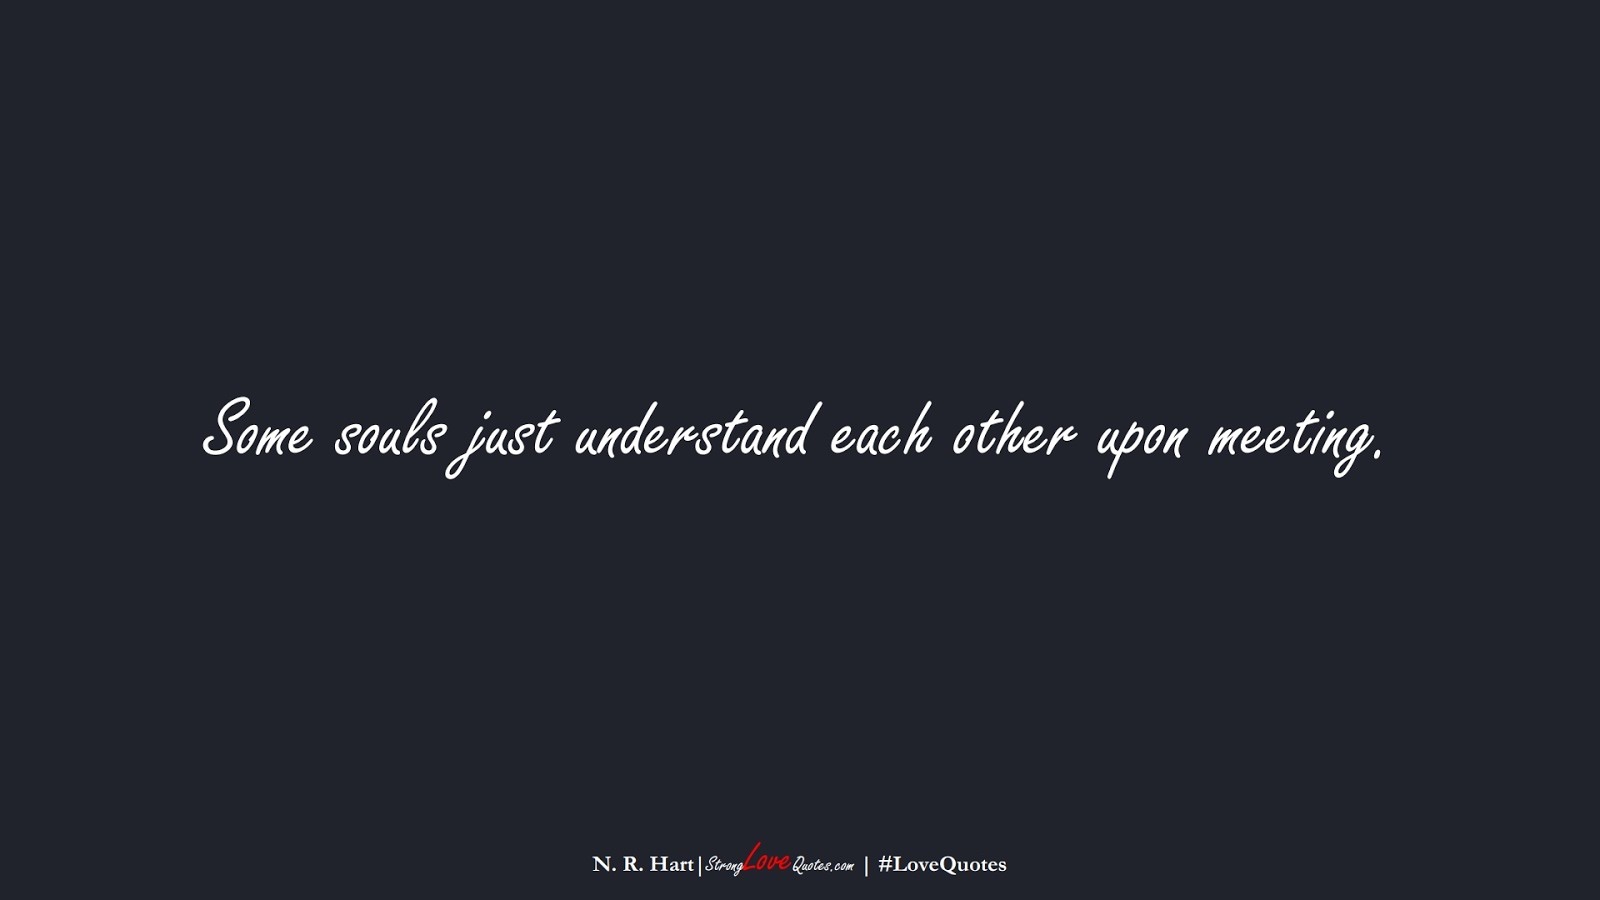 Some souls just understand each other upon meeting. (N. R. Hart);  #LoveQuotes